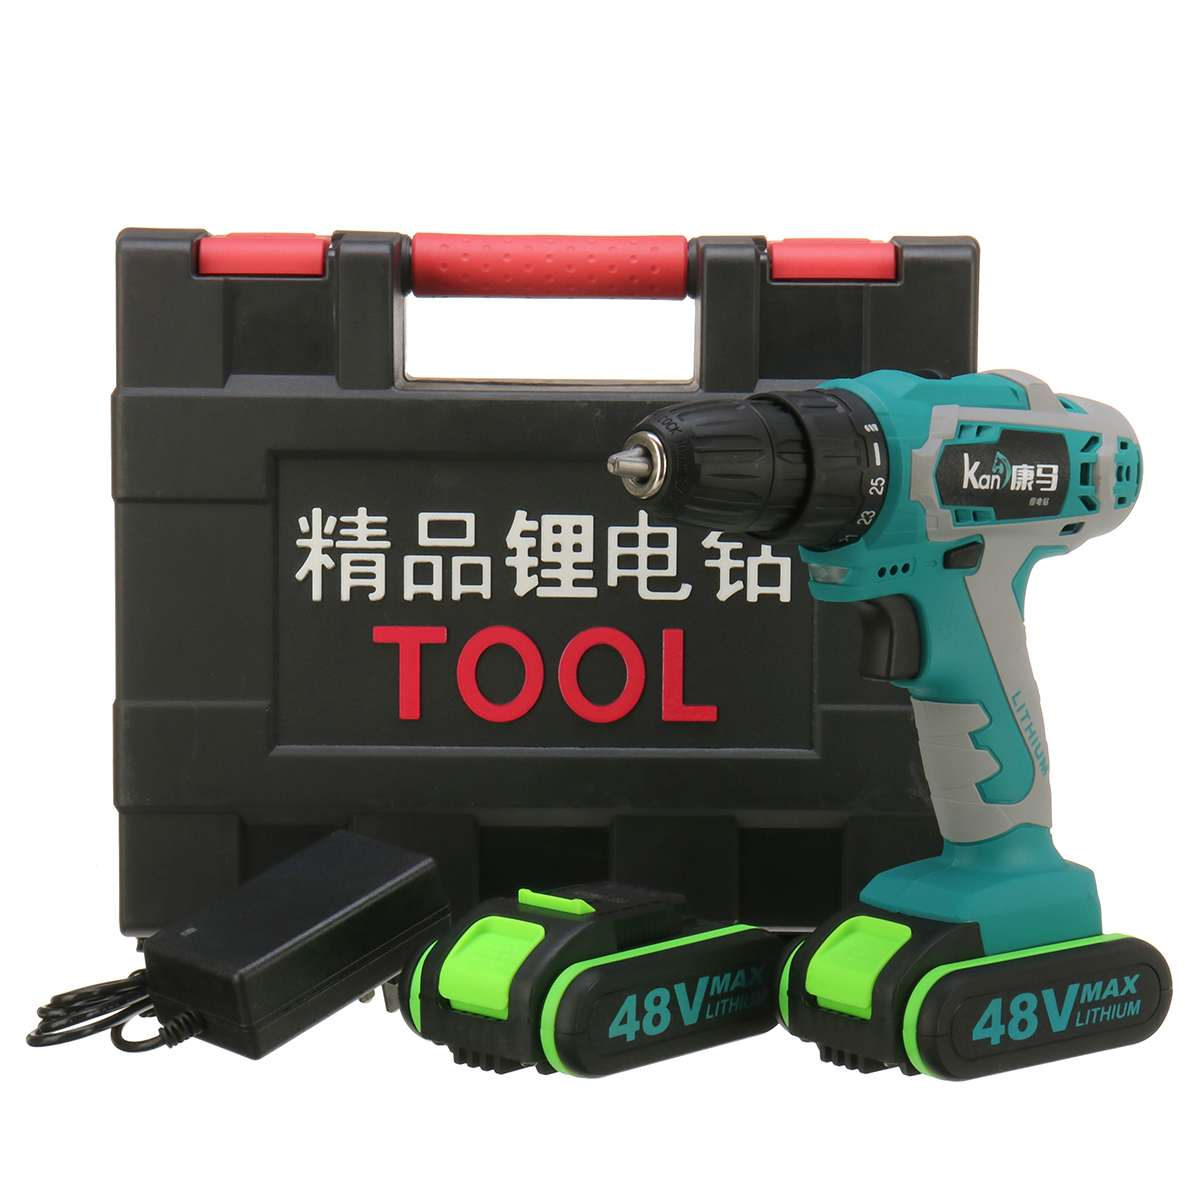 48V Electric Hammer Cordless Drill High/Low Speed W/ 2 Battery Woodworking